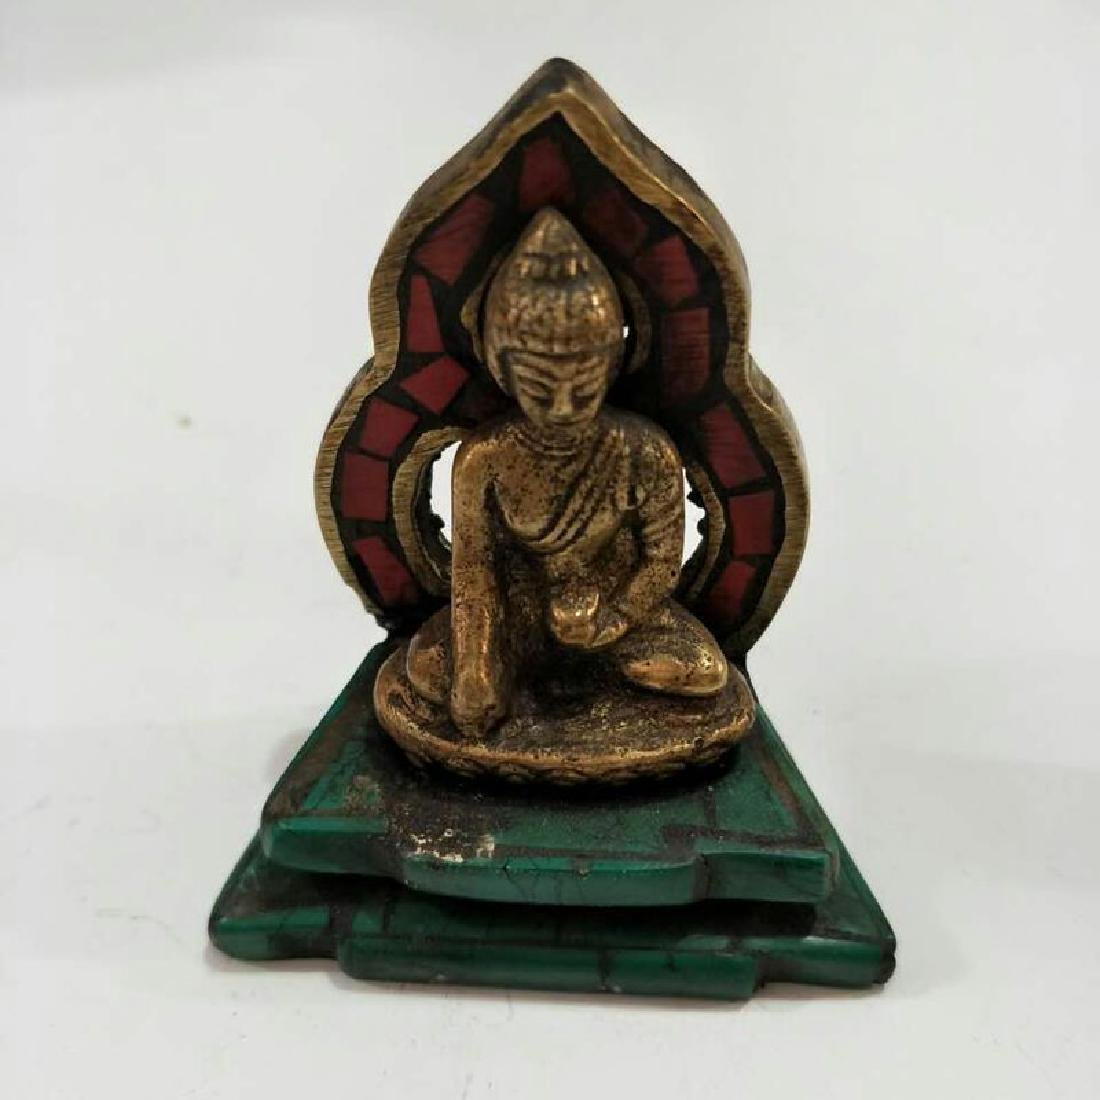 Chinese Antique Napel Turquoise & Brass Buddha Statue